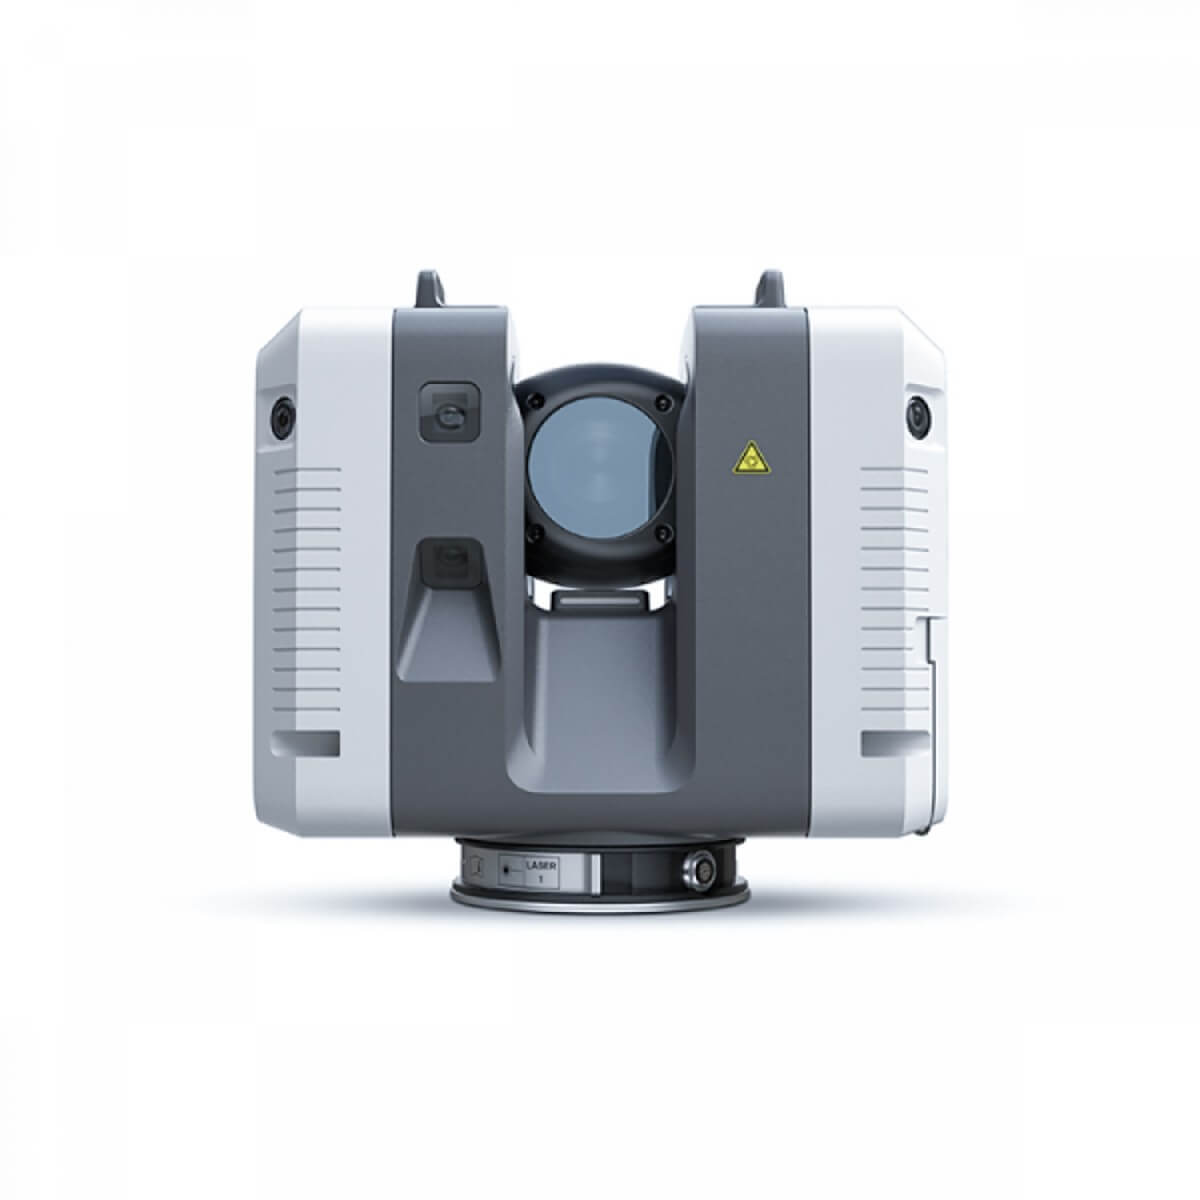 3D laser scanning and object digitization